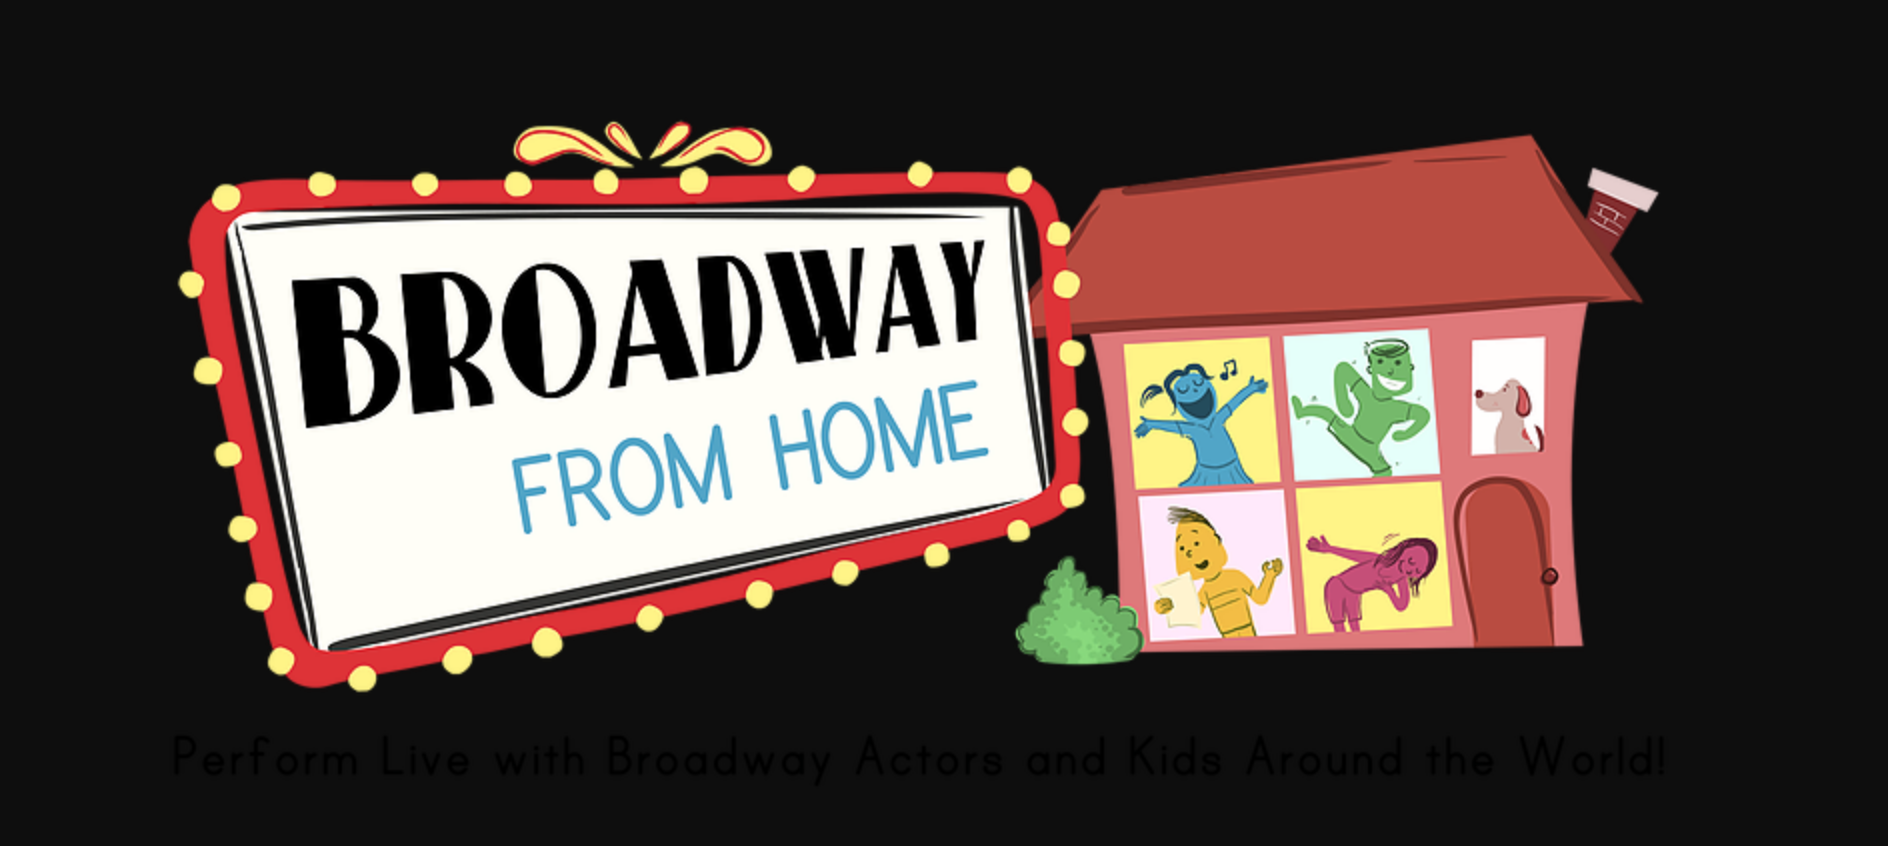 Broadway from Home Virtual Fundraiser